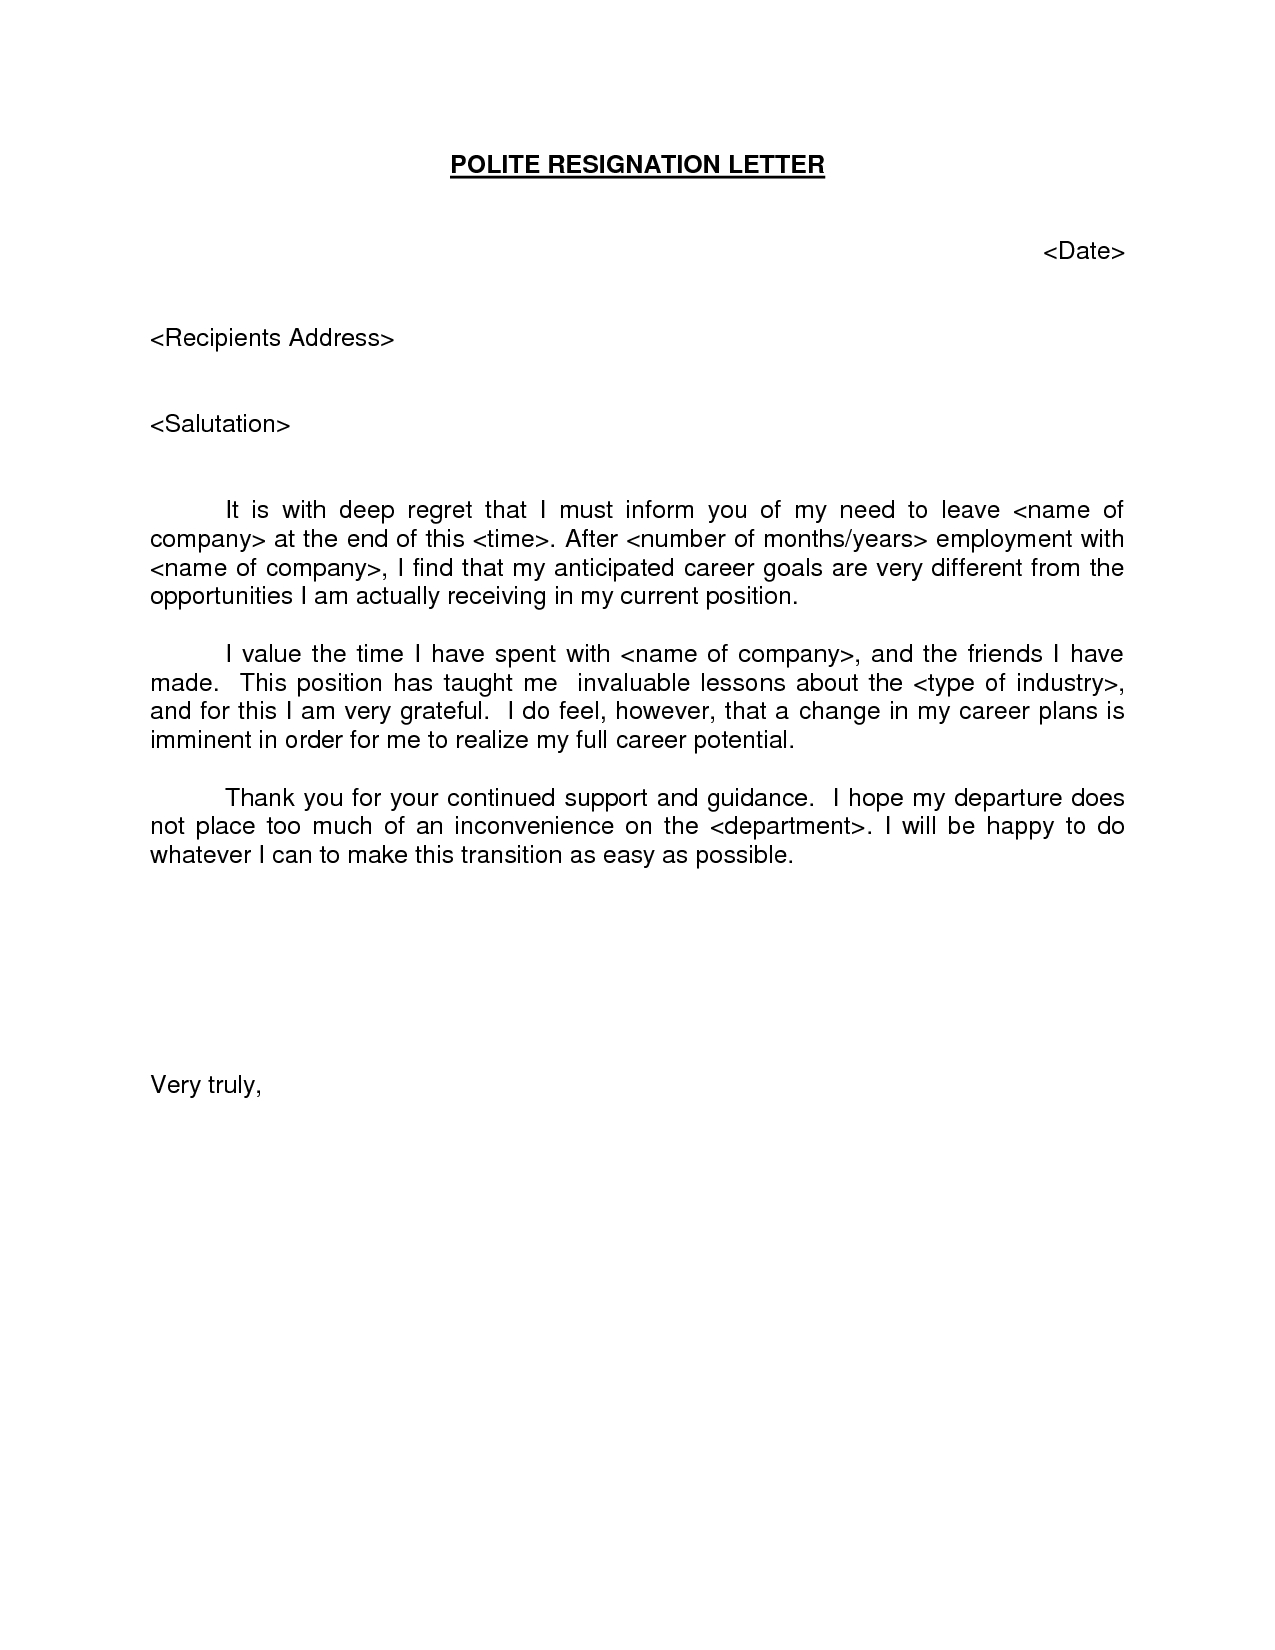 Letter Of Resignation Teacher Template - Polite Resignation Letter Bestdealformoneywriting A Letter